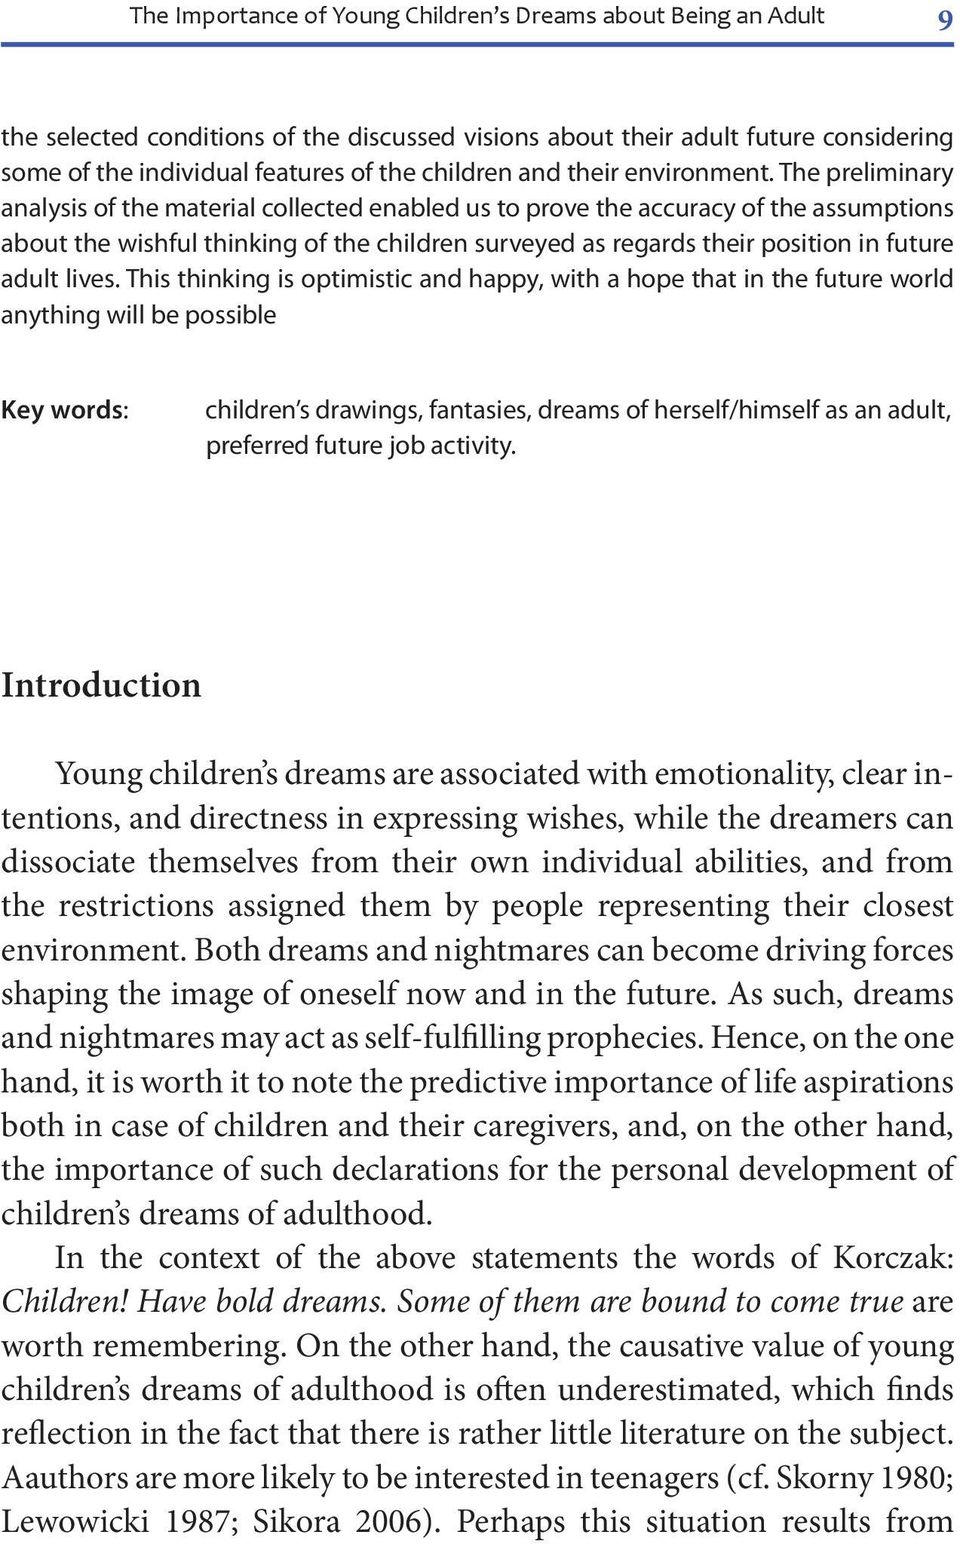 The preliminary analysis of the material collected enabled us to prove the accuracy of the assumptions about the wishful thinking of the children surveyed as regards their position in future adult